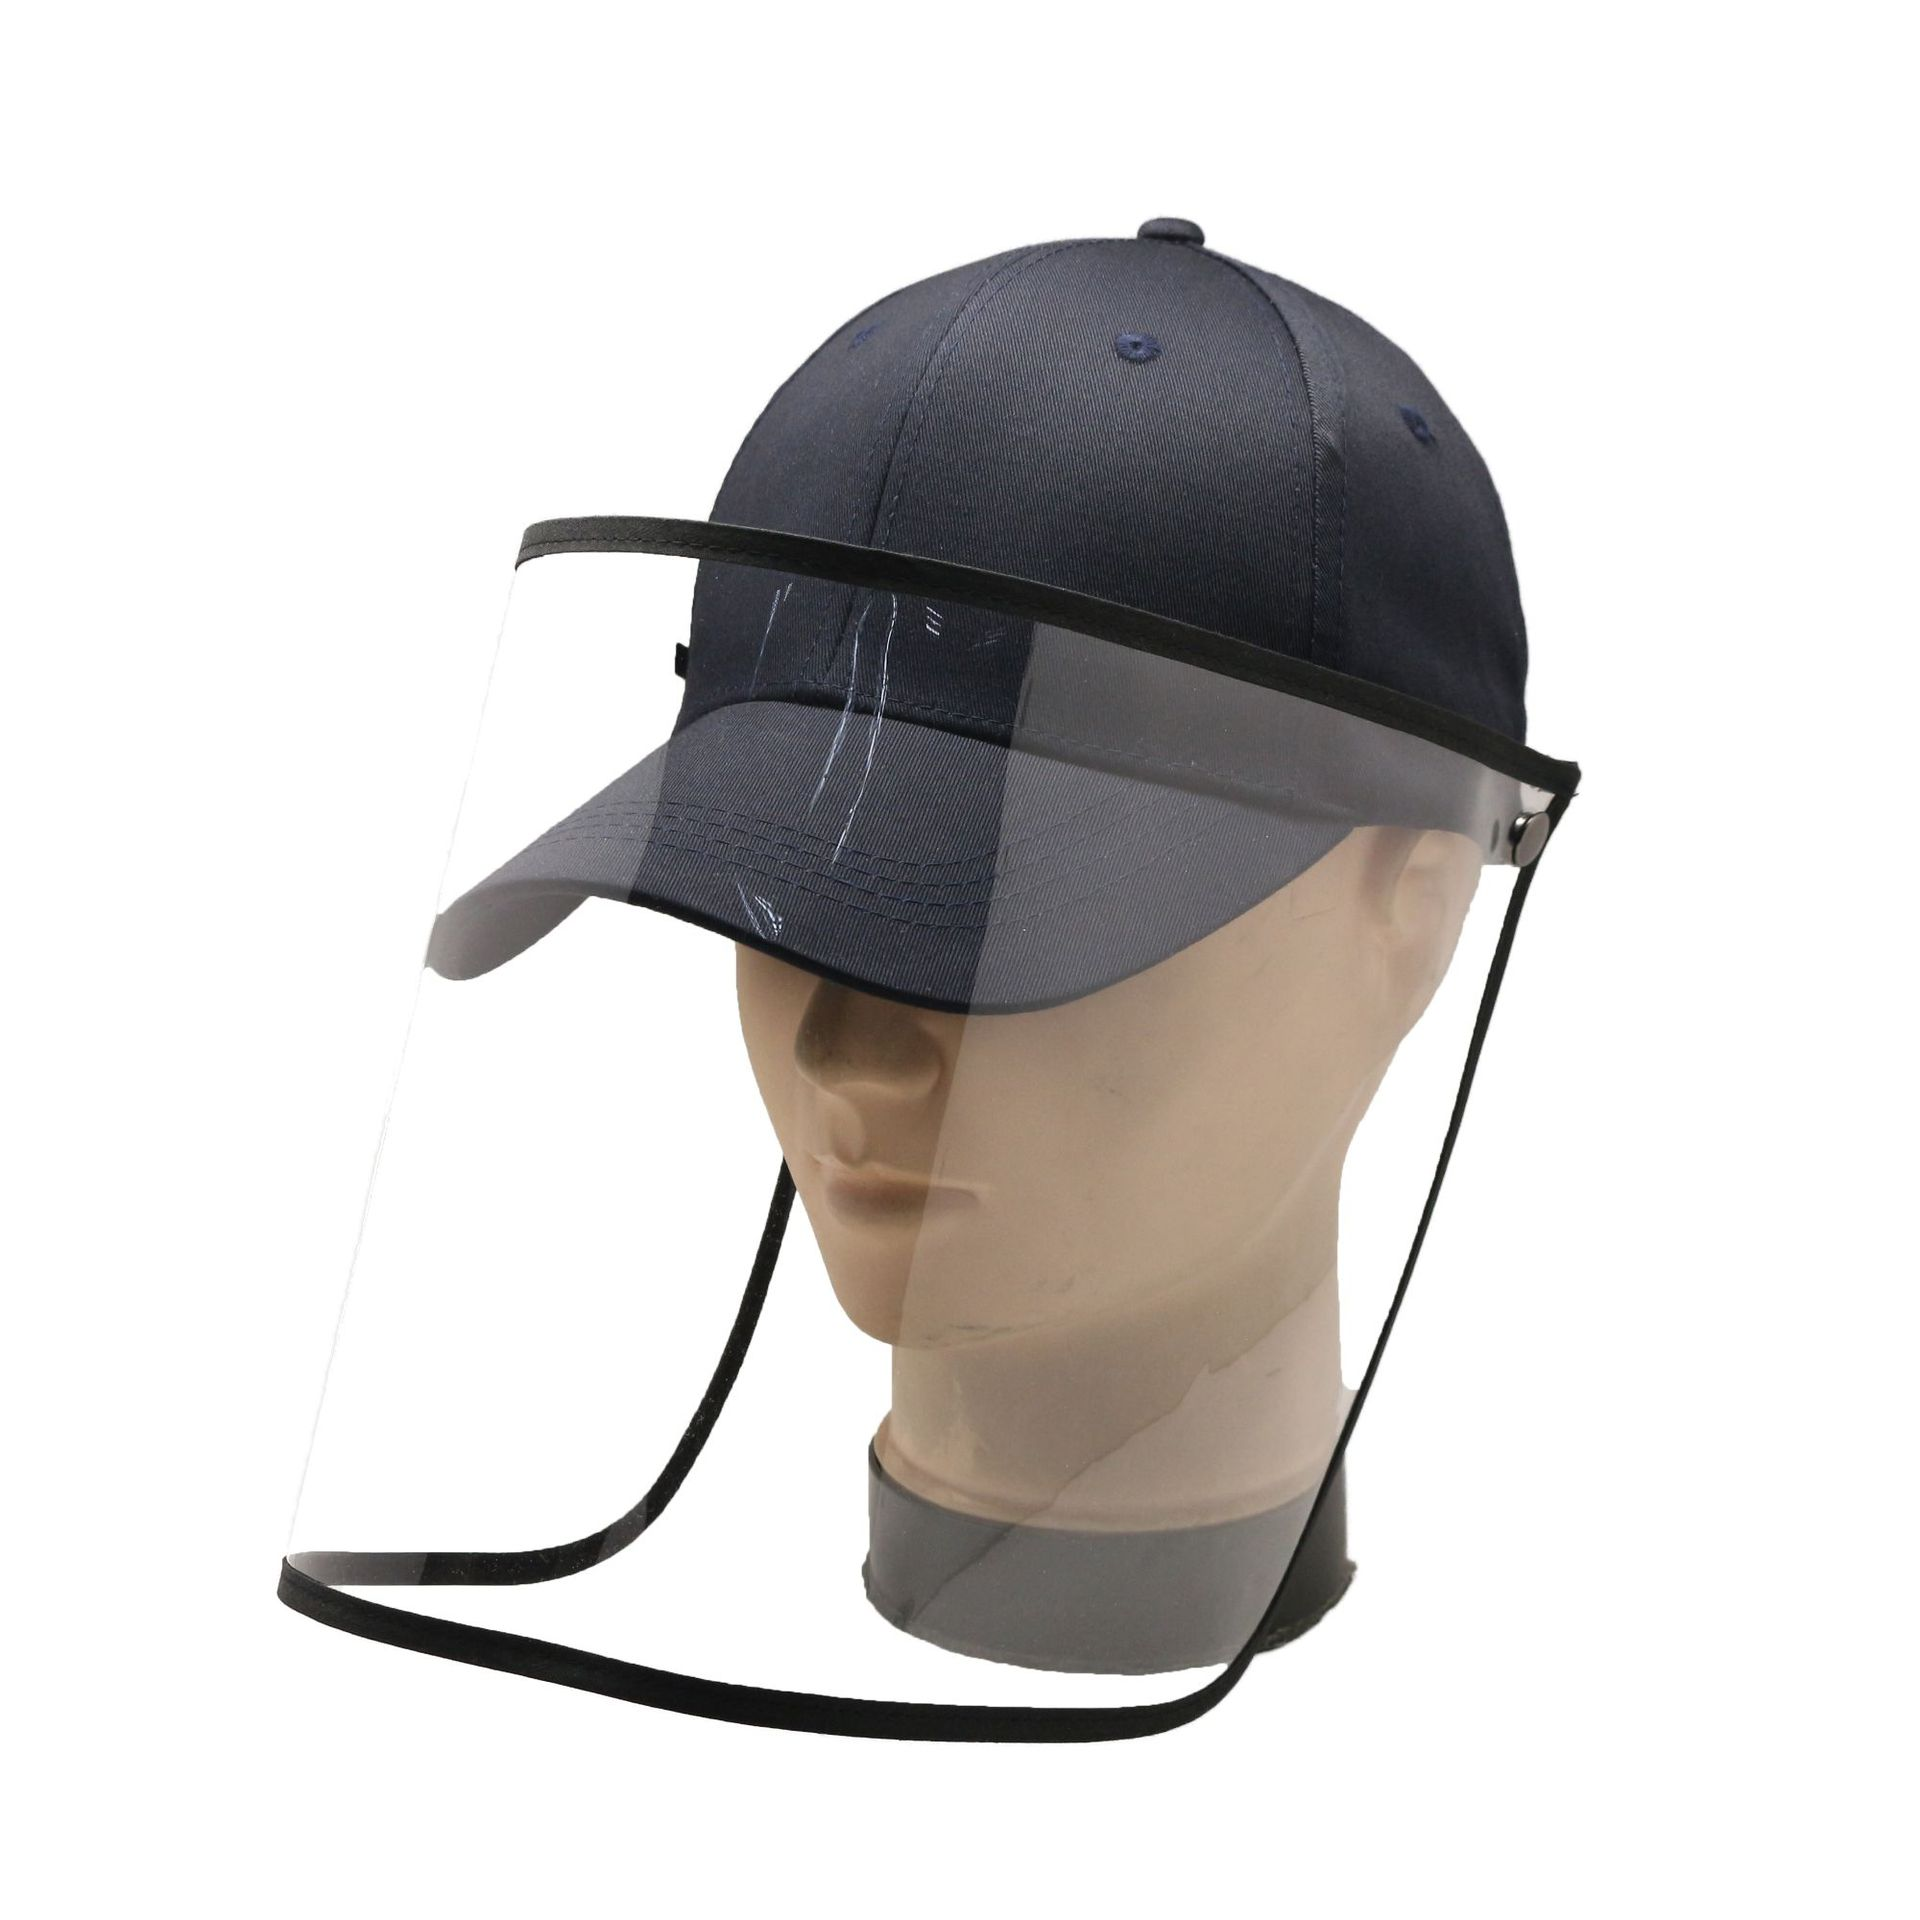 Virus Protection Mask Baseball Cap Removable Windproof Anti-dust Anti-droplet Spittle Face Covering Bucket Hat Sun Visor Cap